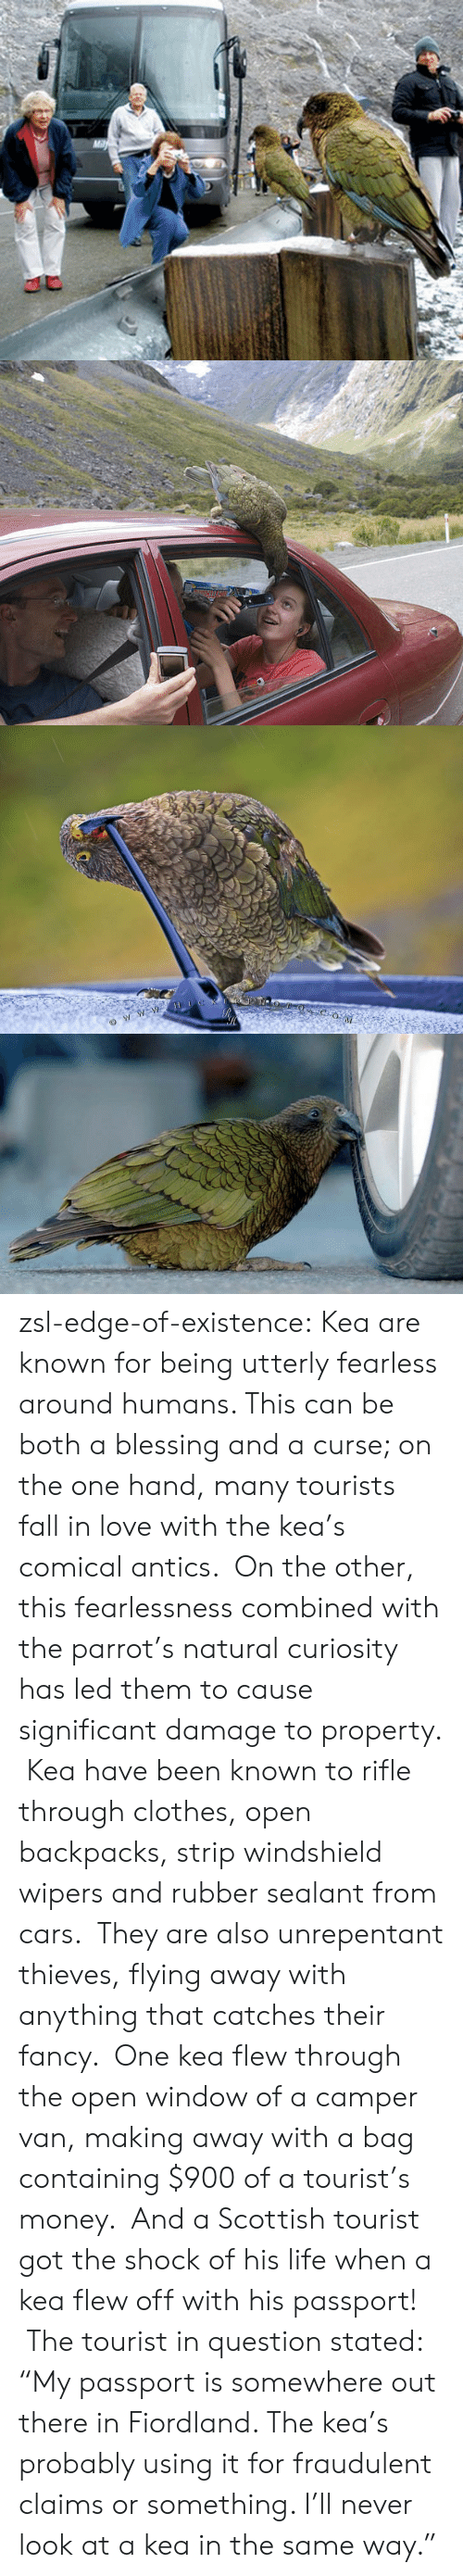 "Cars, Clothes, and Fall: zsl-edge-of-existence:  Kea are known for being utterly fearless around humans. This can be both a blessing and a curse; on the one hand, many tourists fall in love with the kea's comical antics.  On the other, this fearlessness combined with the parrot's natural curiosity has led them to cause significant damage to property.  Kea have been known to rifle through clothes, open backpacks, strip windshield wipers and rubber sealant from cars.  They are also unrepentant thieves, flying away with anything that catches their fancy.  One kea flew through the open window of a camper van, making away with a bag containing $900 of a tourist's money.  And a Scottish tourist got the shock of his life when a kea flew off with his passport!  The tourist in question stated: ""My passport is somewhere out there in Fiordland. The kea's probably using it for fraudulent claims or something. I'll never look at a kea in the same way."""